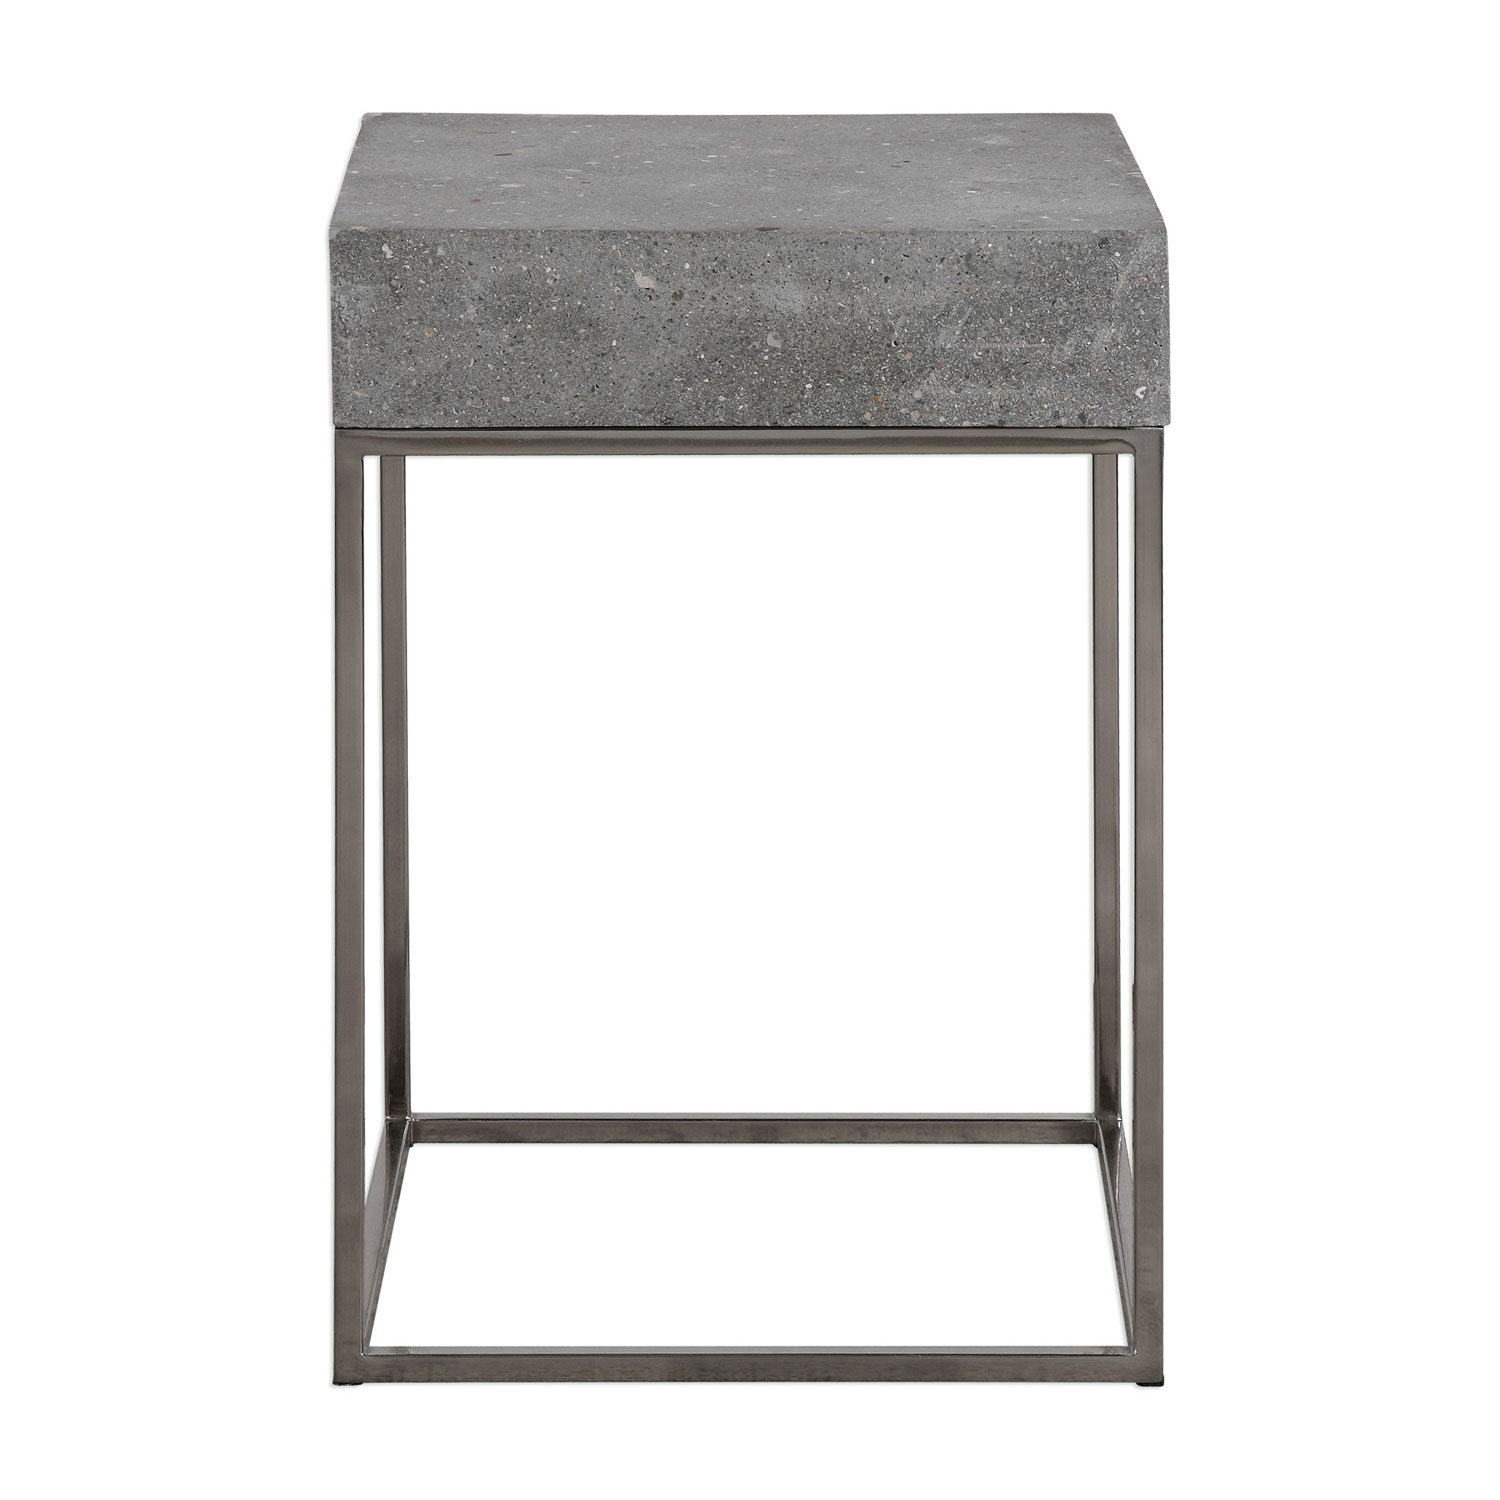 uttermost jude concrete accent table bellacor tables hover zoom antique blue chest with glass doors metal patio chairs wood occasional nautical themed side yellow wall clock